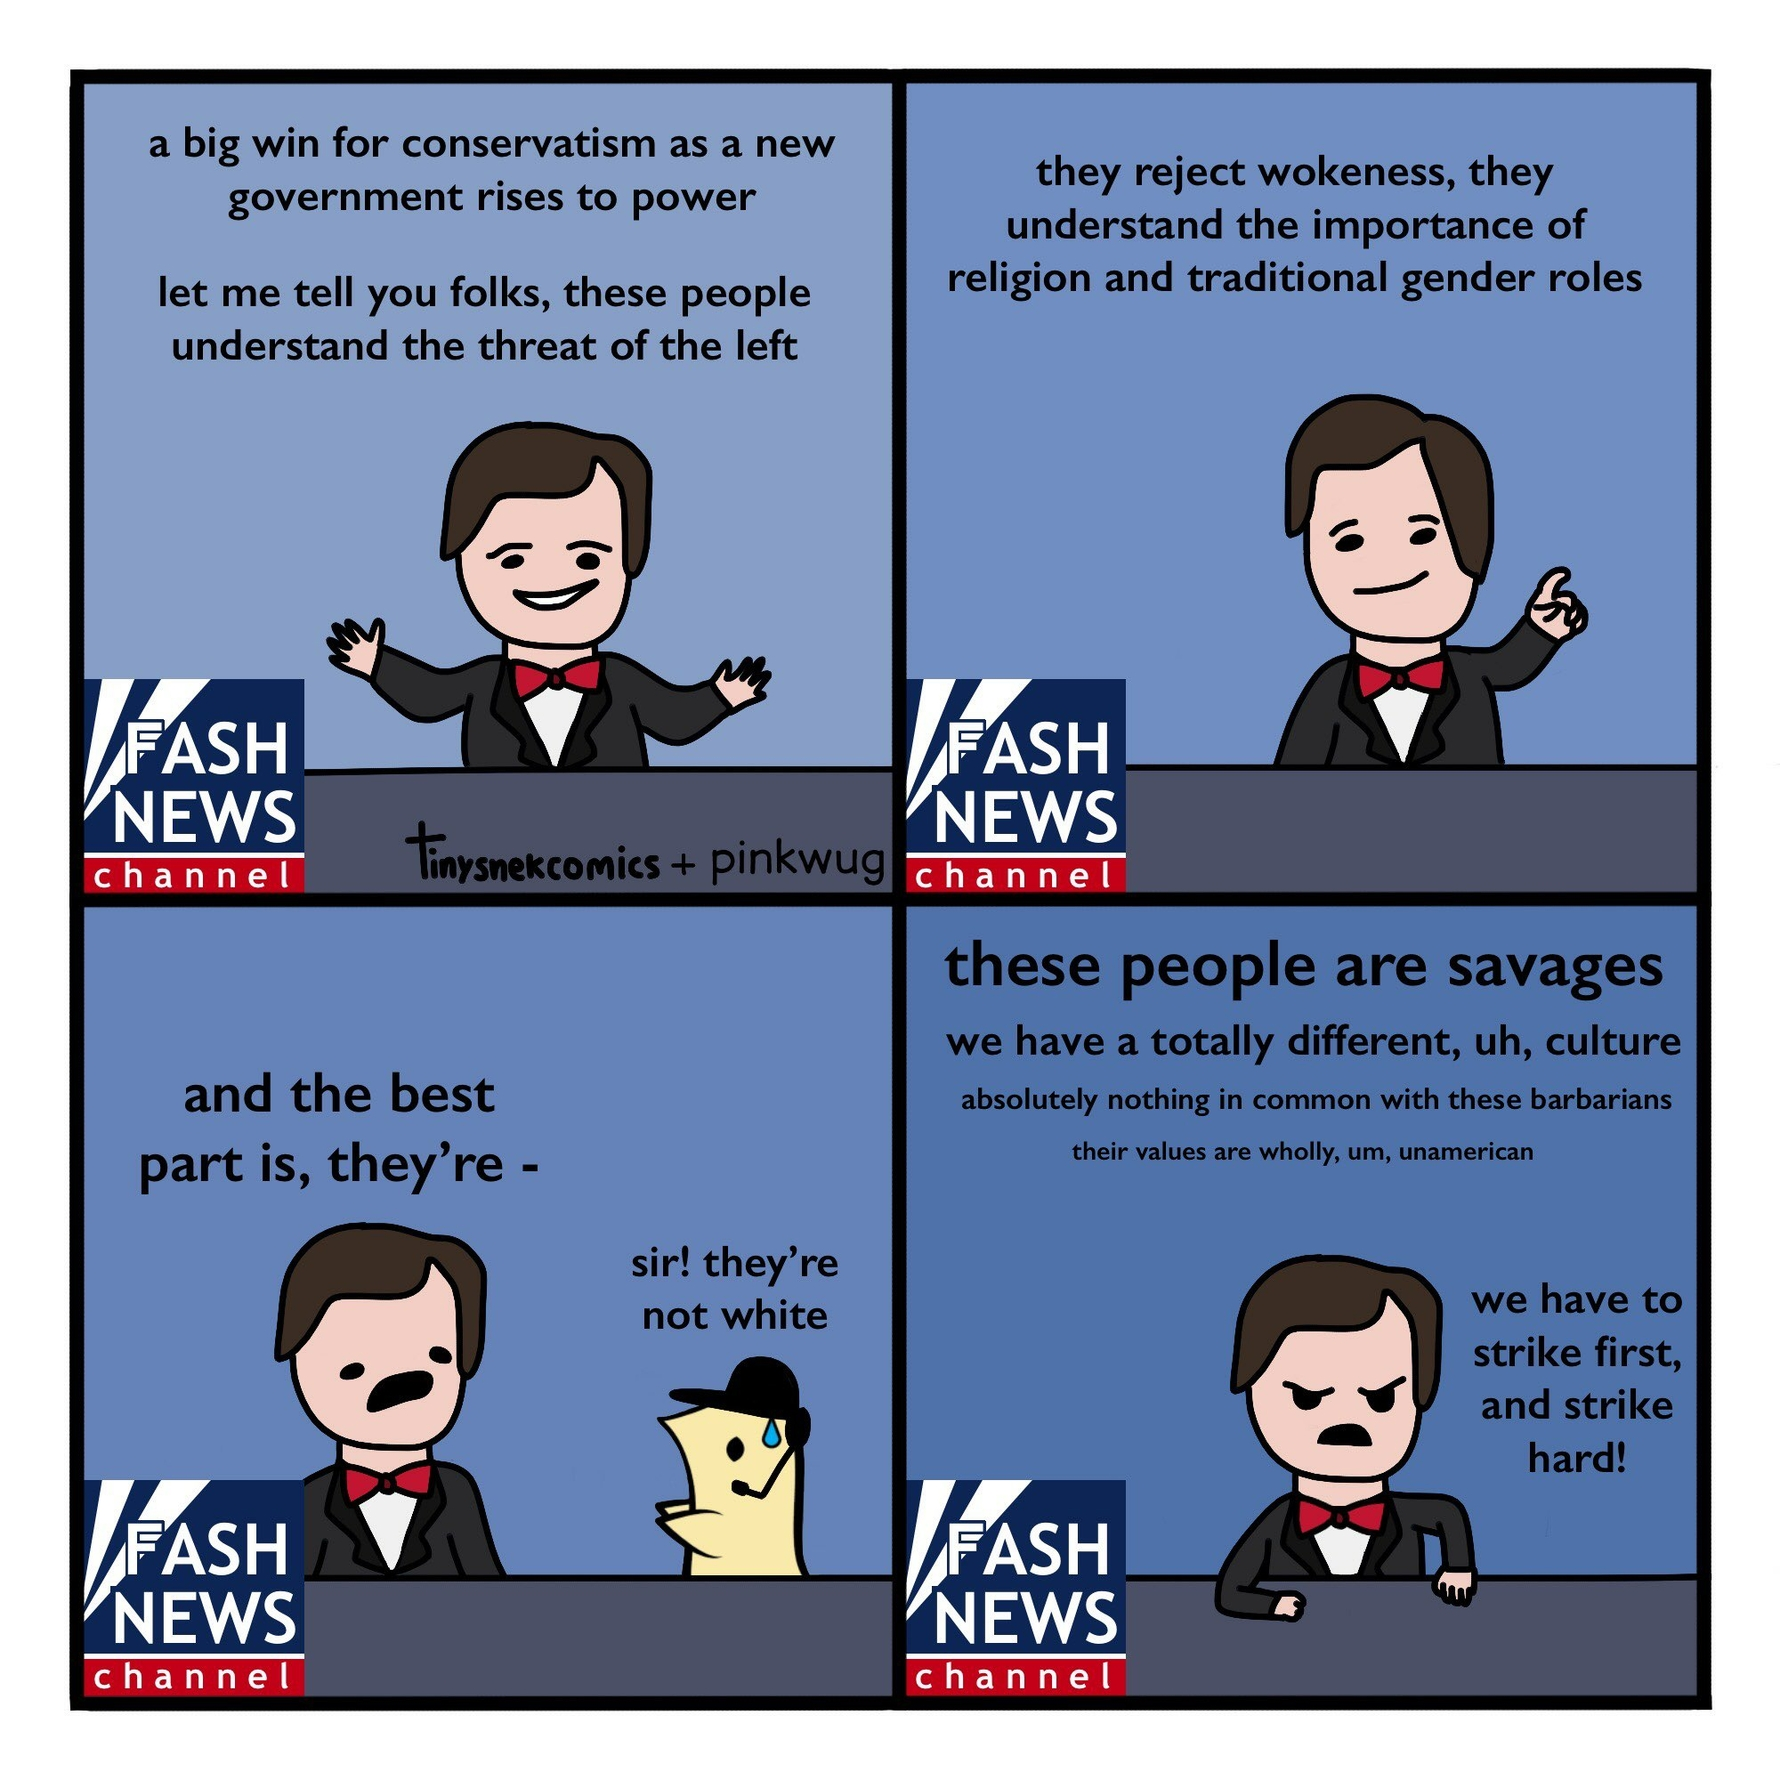 pinkwug comic: News host: A big win for conservatism as a new government rises to power. Let me tell you folks, these people understand the threat of the left.  News host: They reject wokeness, they understand the importance of religion and traditional gender roles.  News host: and the best part is, they're -  Assistant wug whispers: sir! they're not white  News host: These people are savages. We have a totally different, uh, culture. Absolutely nothing in common with these barbarians. Their values are wholly, um, unamerican. We have to strike first, and strike hard!